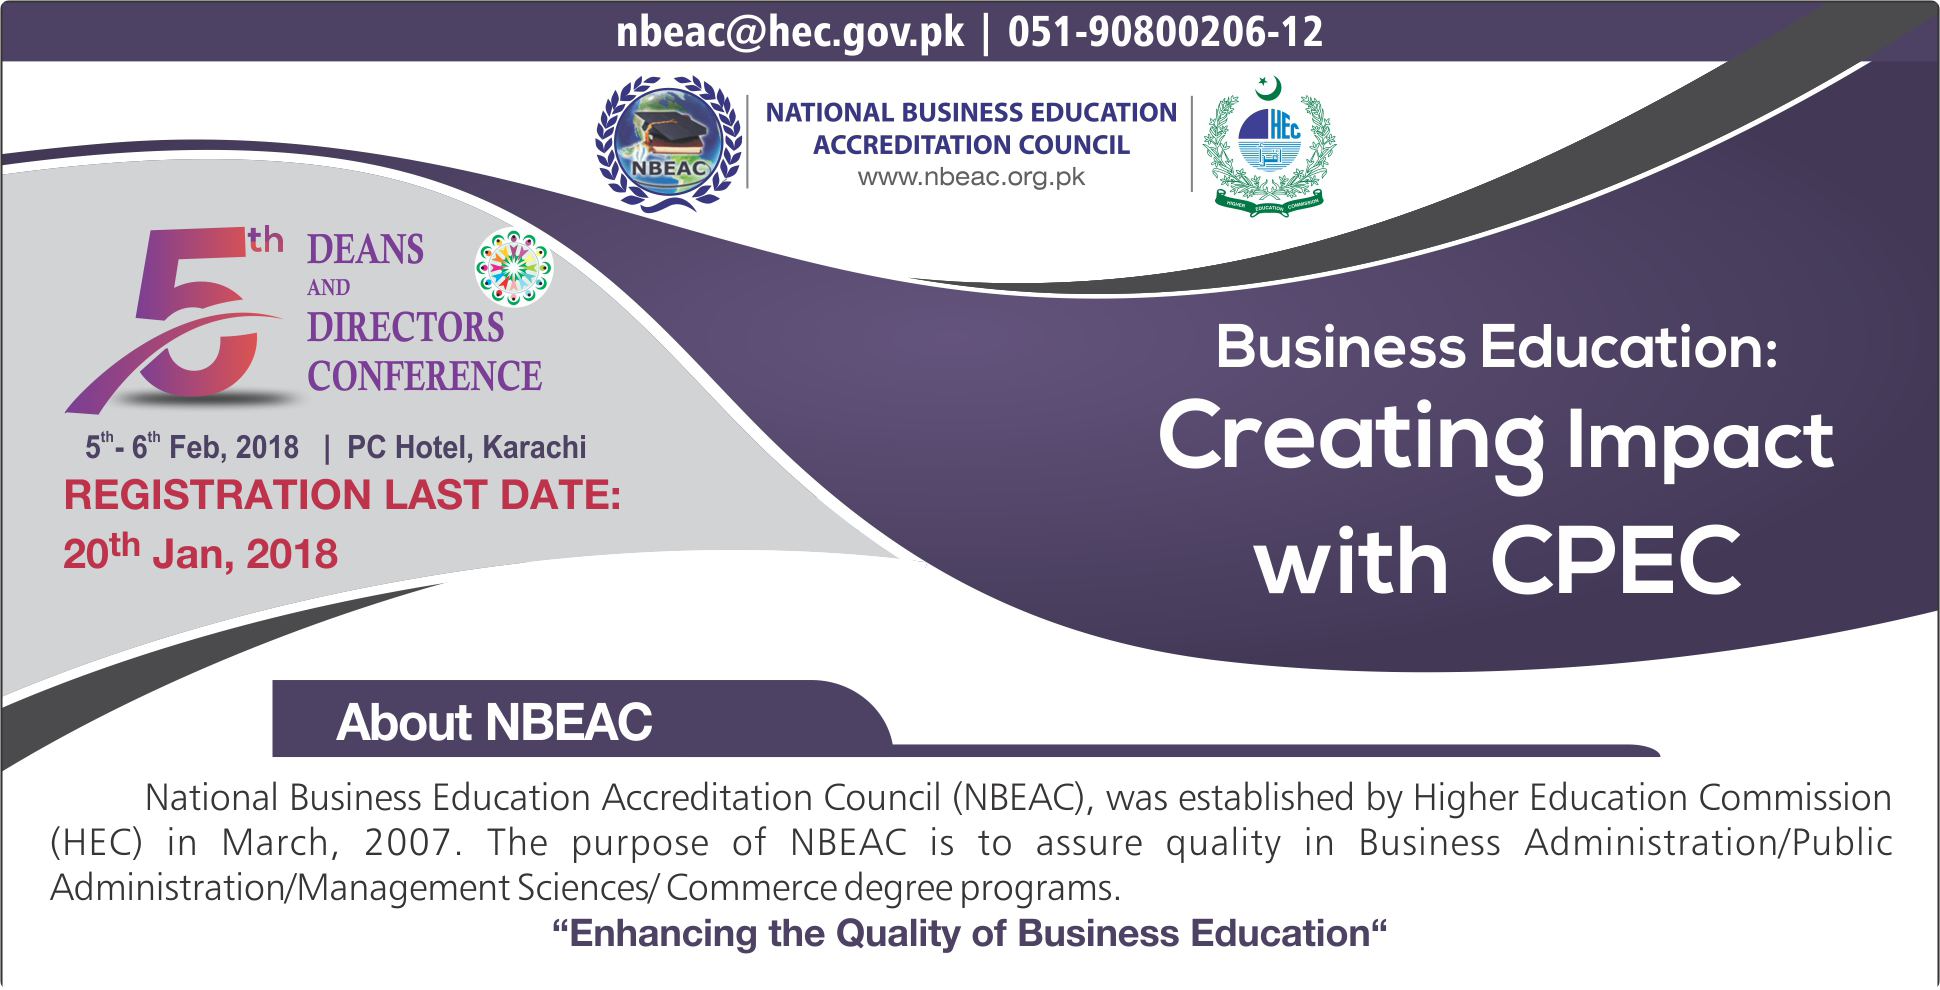 NBEAC 5TH DEANS & DIRECTORS CONFERENCE - 2018